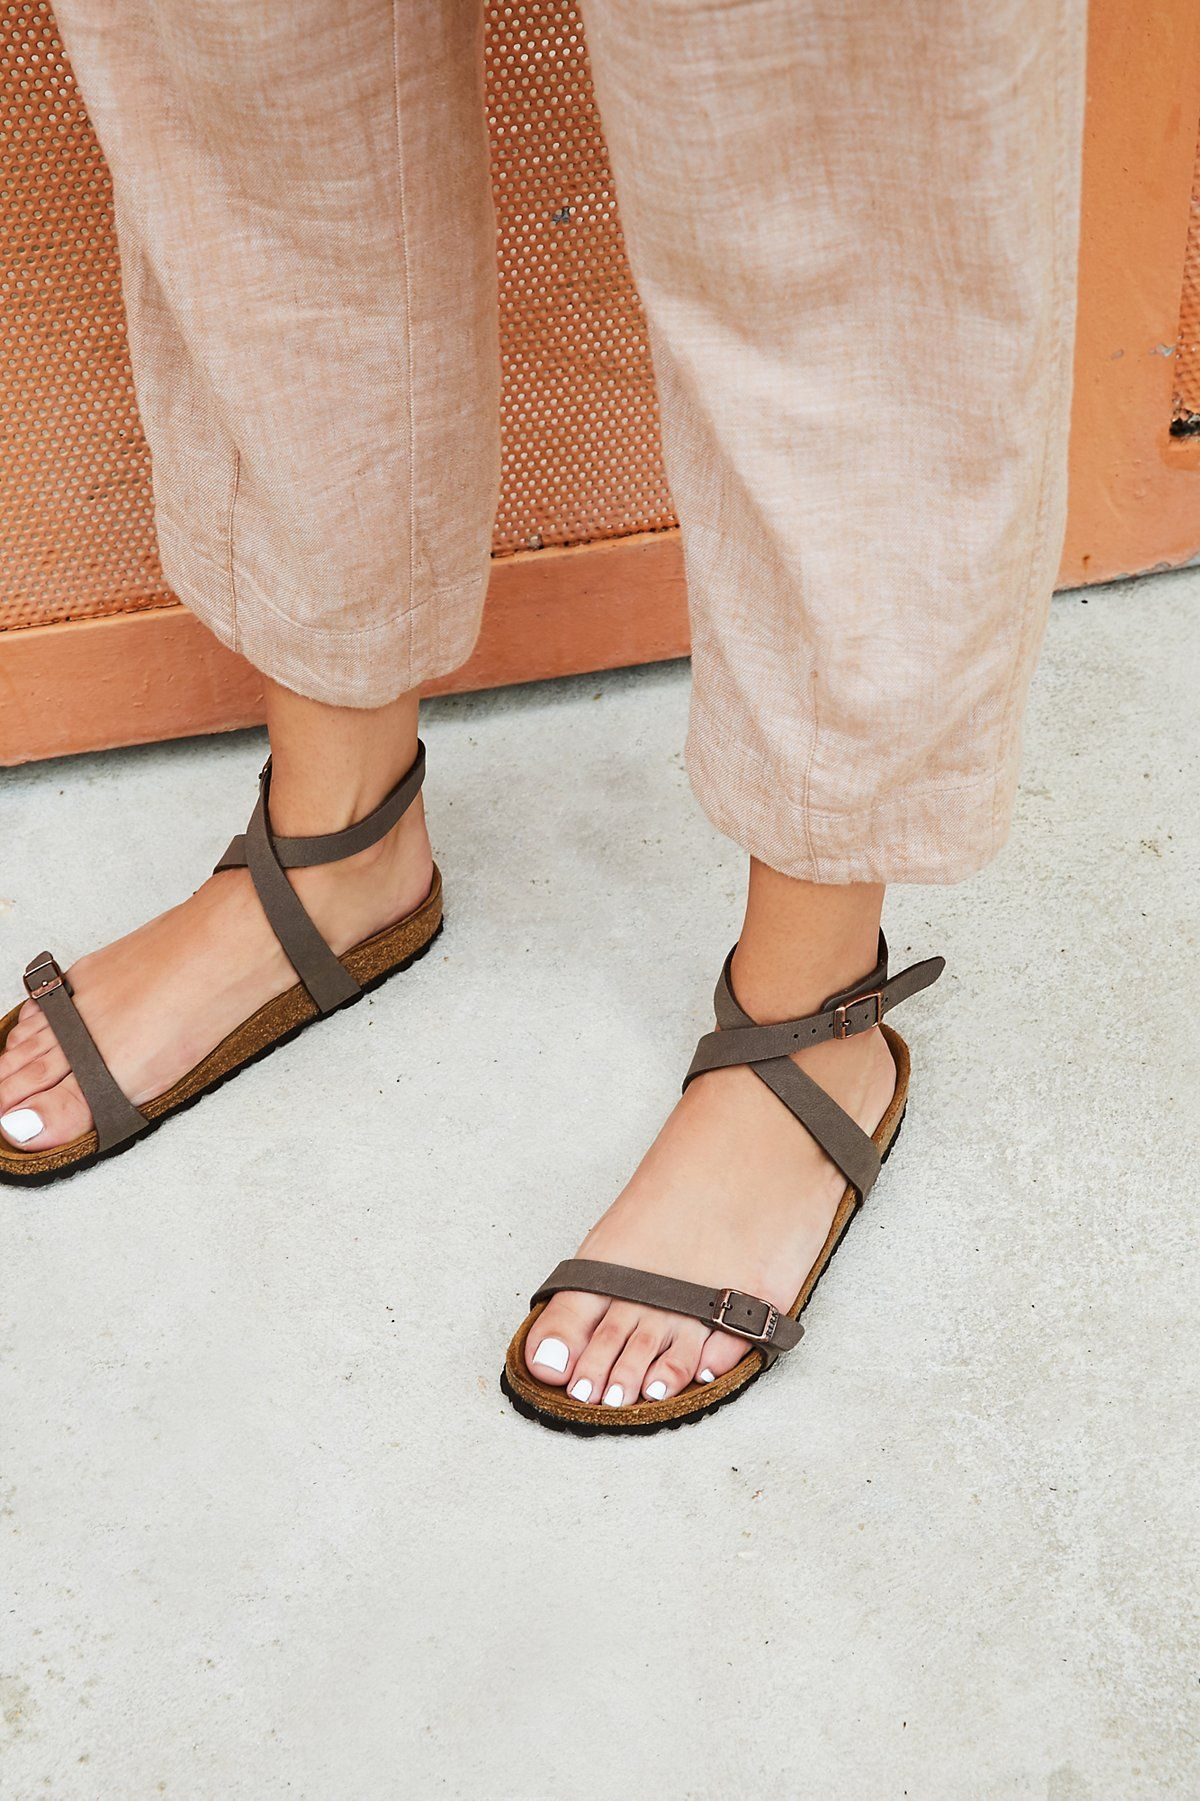 12cba534e7a4 Yara Birkenstock | Elegant sandal with an adjustable ankle strap and toe  loop. Features the Birkenstock classic footbed and shock-absorbing EVA sole.